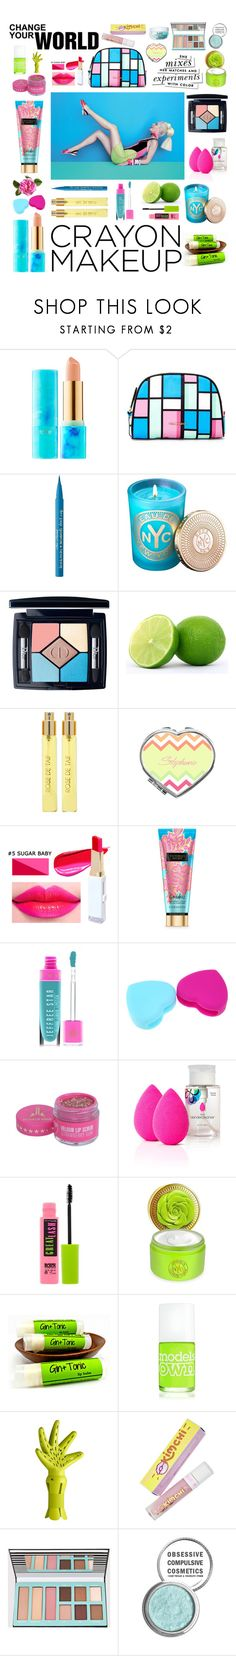 """Crayon-Inspired Makeup"" by shangalairina ❤ liked on Polyvore featuring beauty, tarte, Vera Bradley, Too Faced Cosmetics, Bond No. 9, Christian Dior, WALL, Kate Spade, Perris Monte Carlo and Jeffree Star"